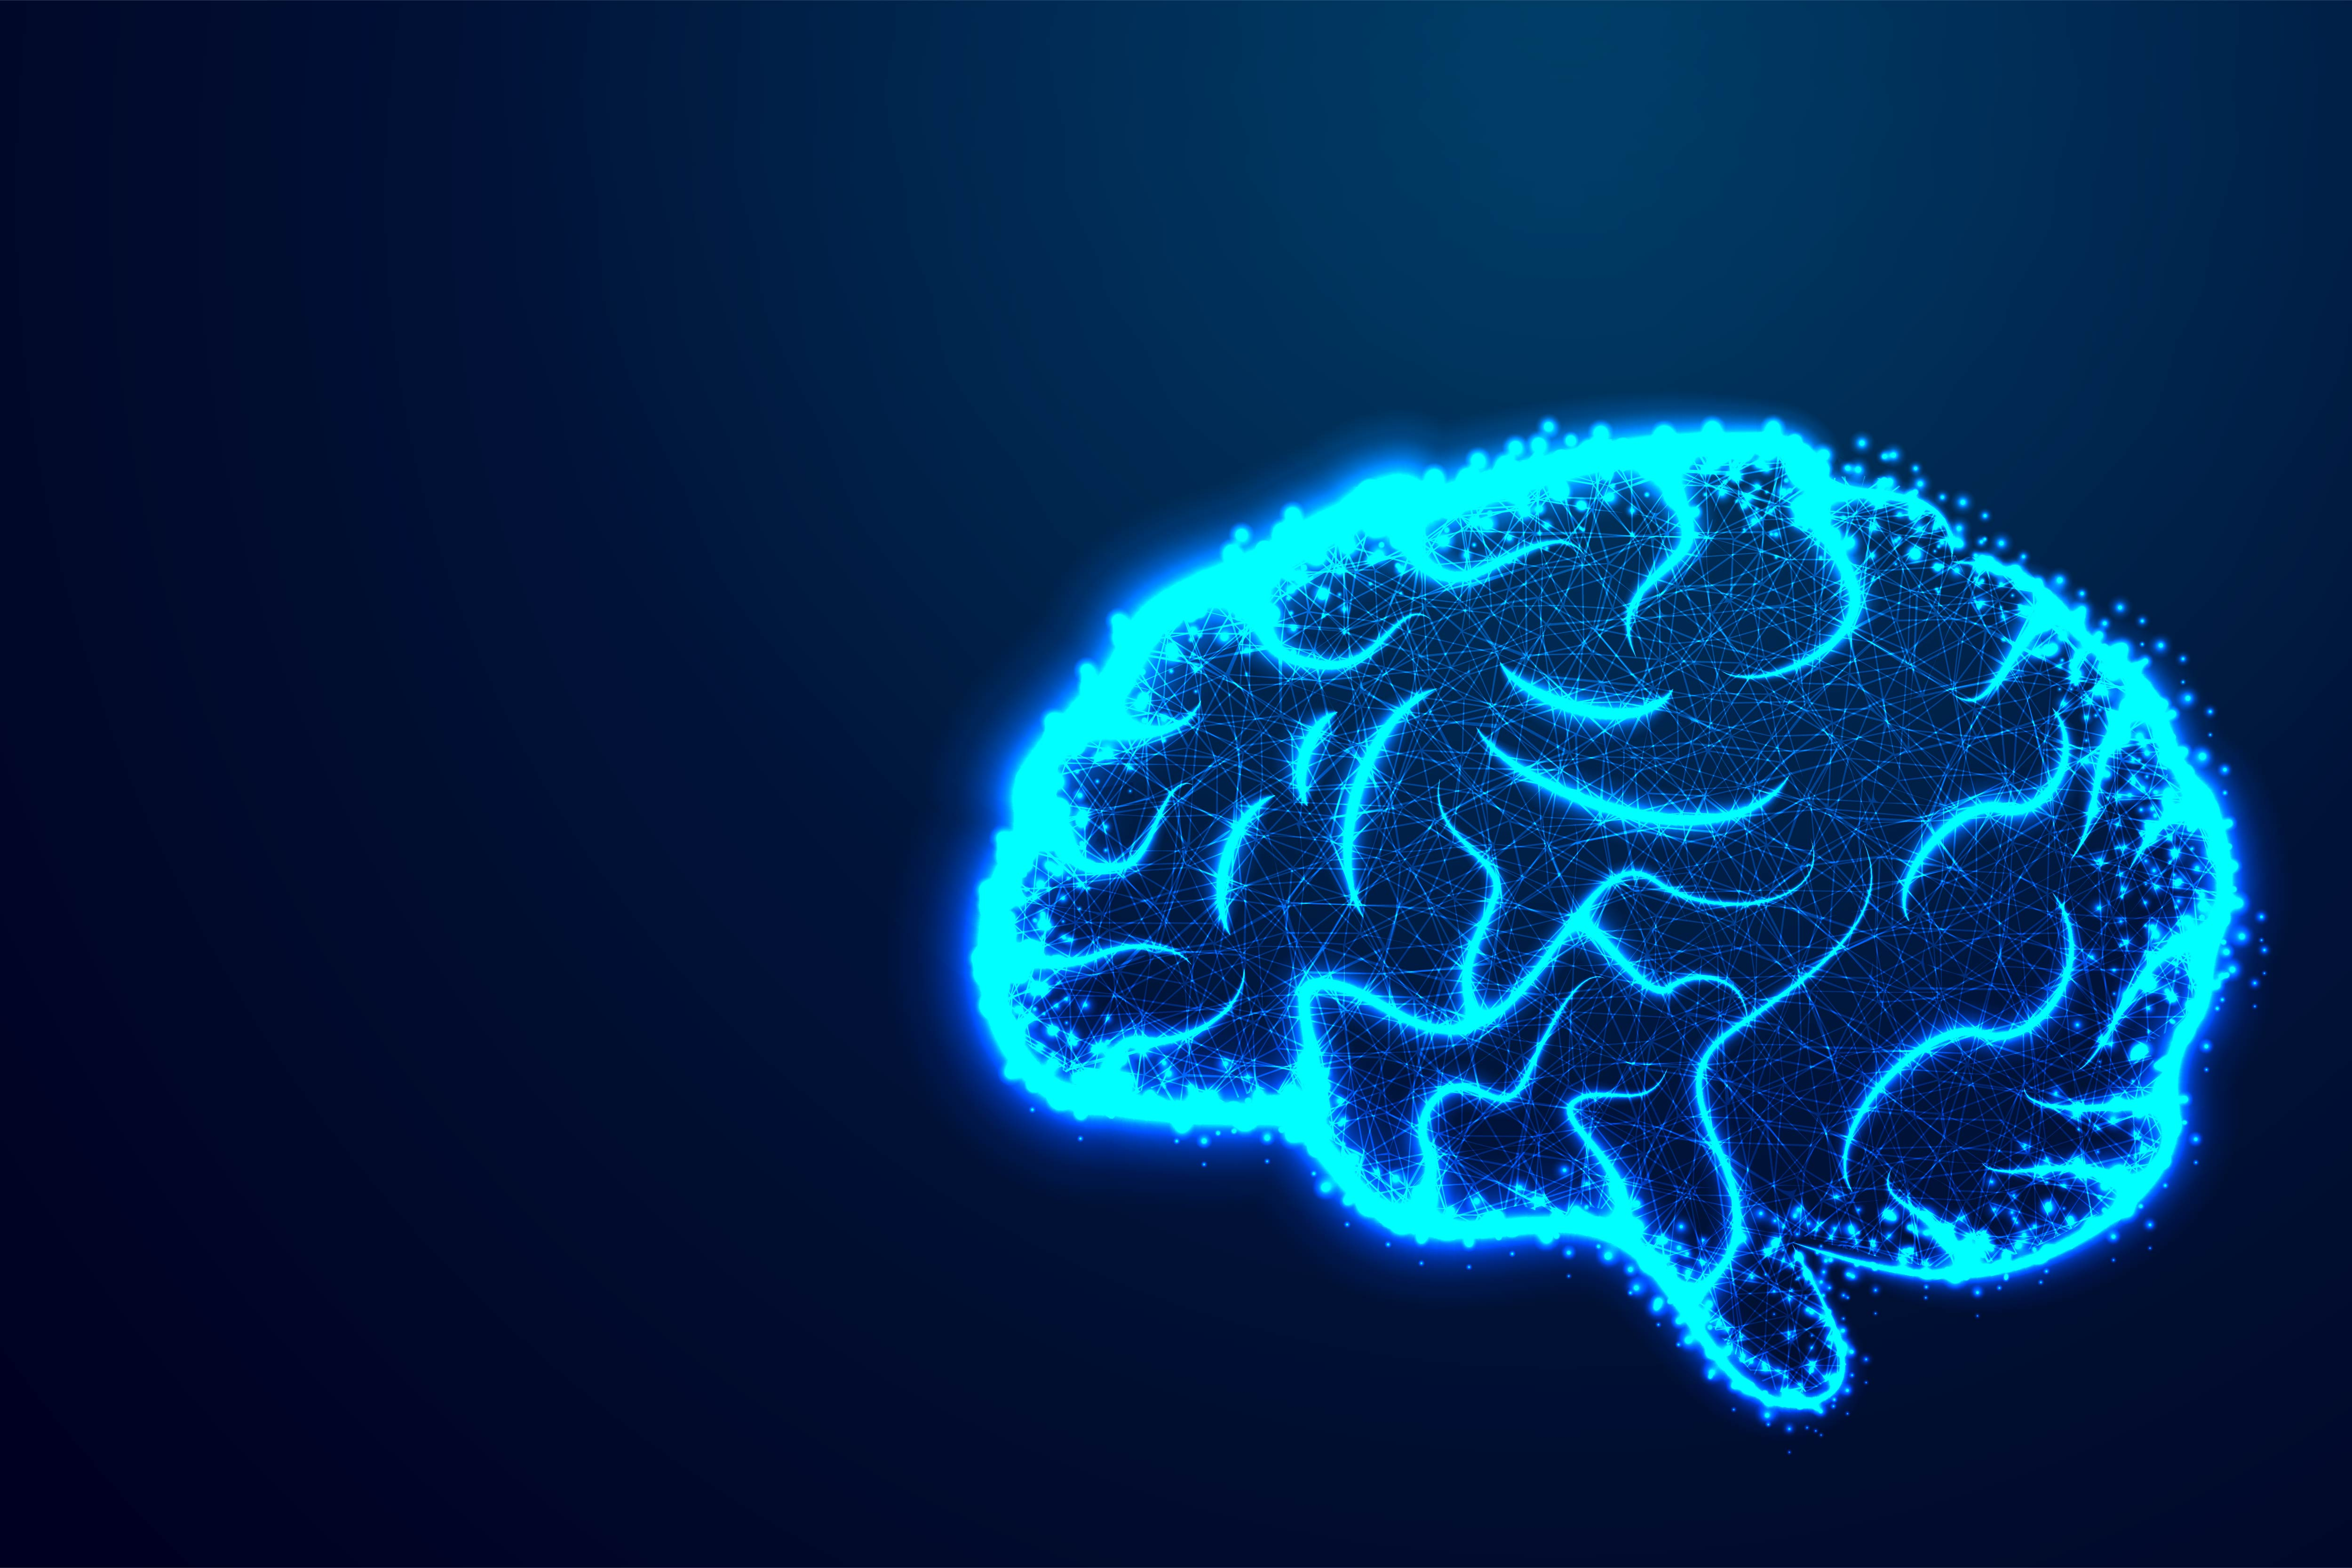 Download Free Abstract Vector Image Of A Human Brain Graphic By Ojosujono96 for Cricut Explore, Silhouette and other cutting machines.